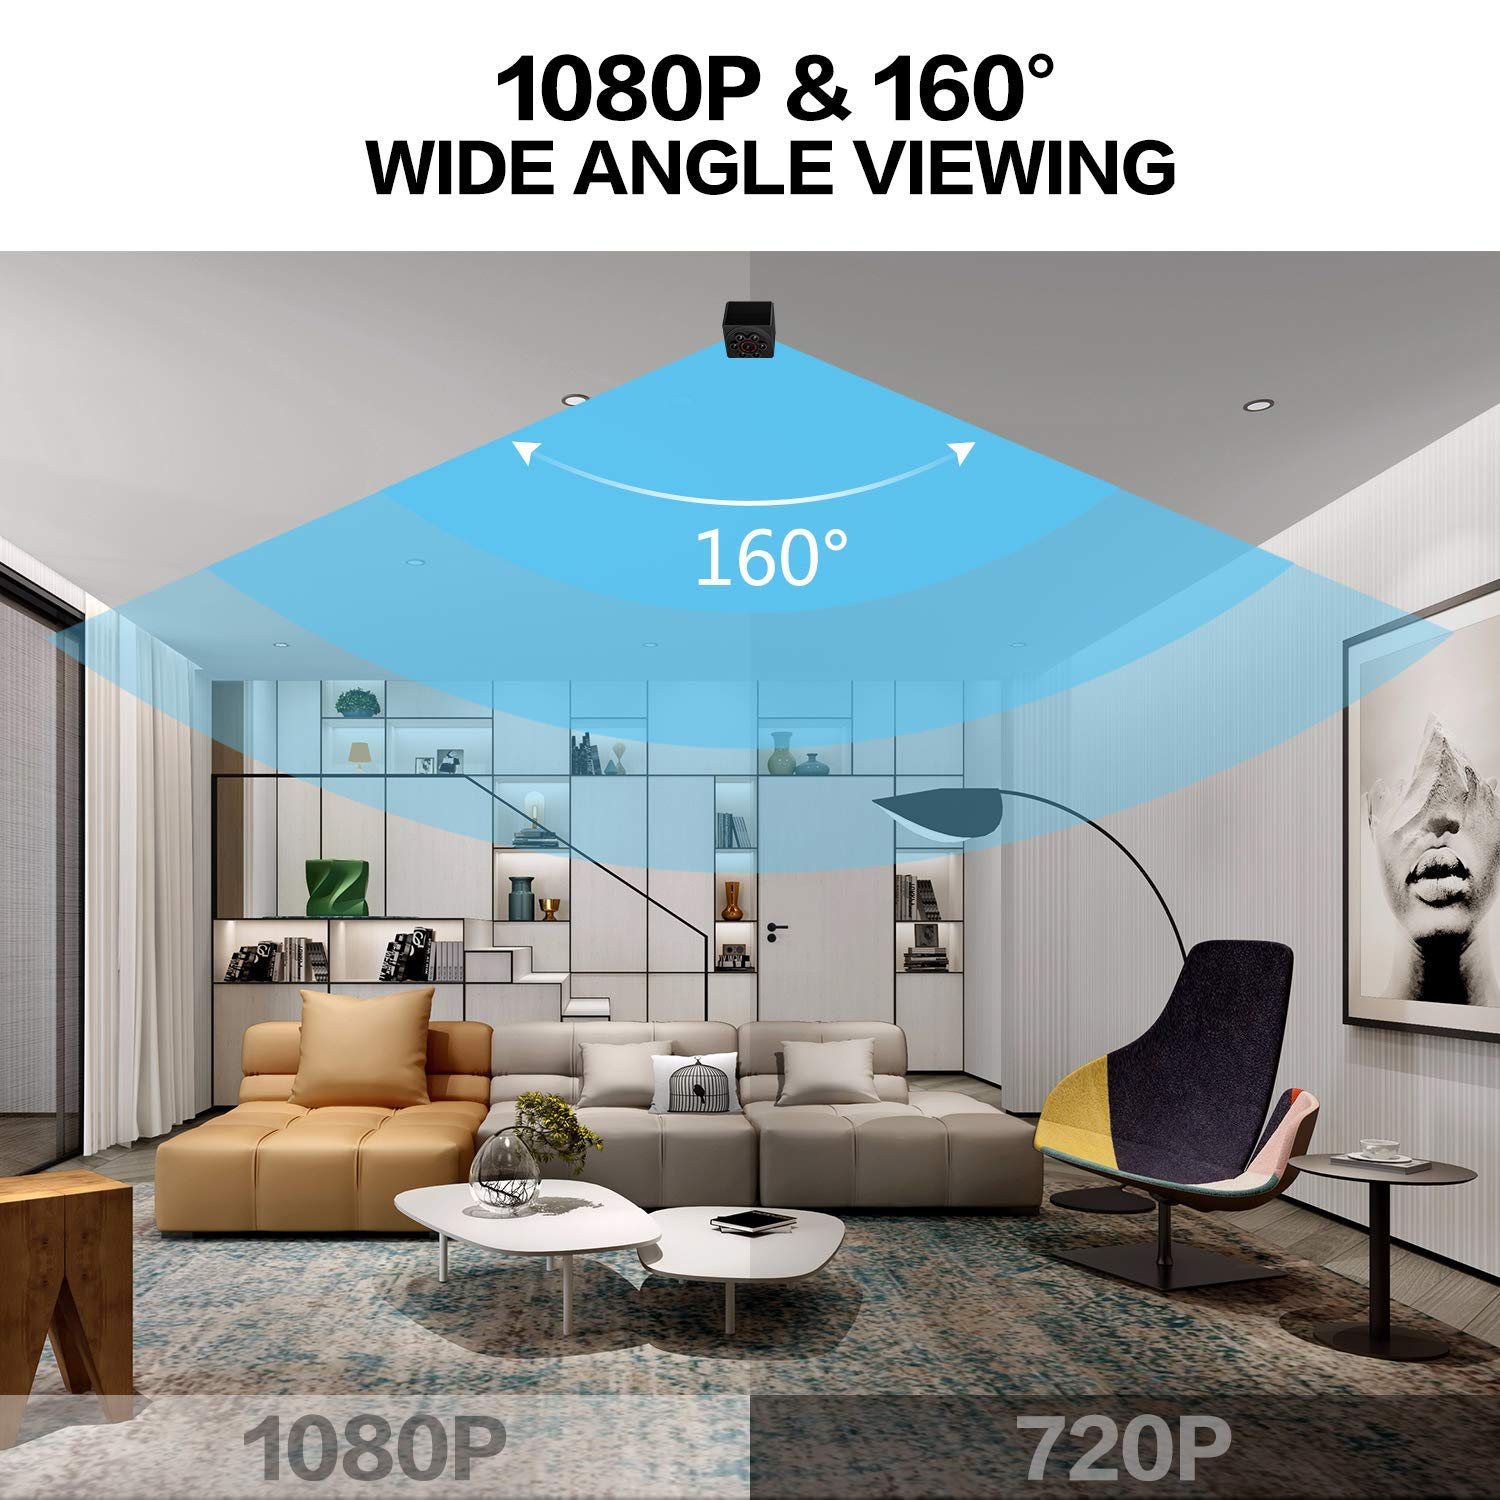 Mini Spy Camera Hidden Nanny Cameras, 2019 1080P HD Night Vision Motion Activated Covert Small Security Camera with Video and Audio for Home, Car, Office